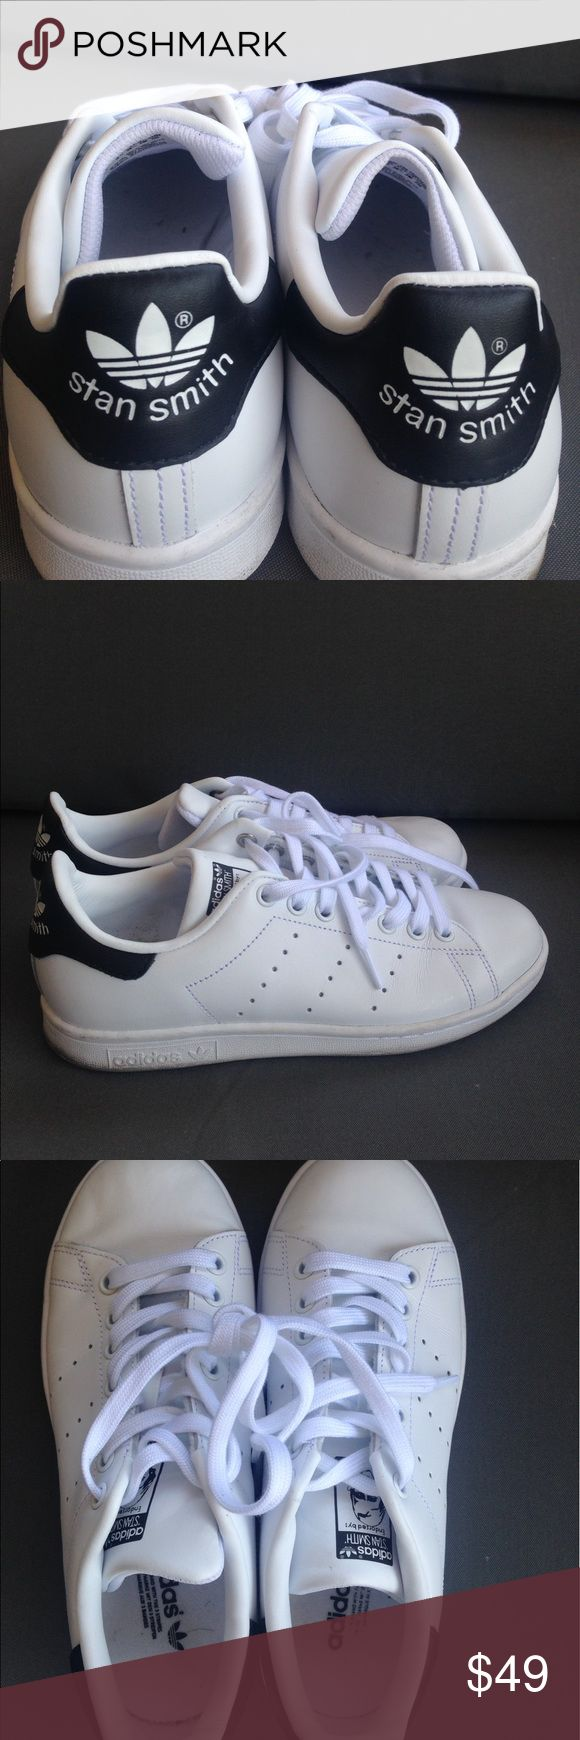 ADIDAS Stan Smith Navy Blue Really clean and white, only worn a couple times with crisp white laces! Super trendy and comfortable Stan Smith Adidas Adidas Shoes Sneakers